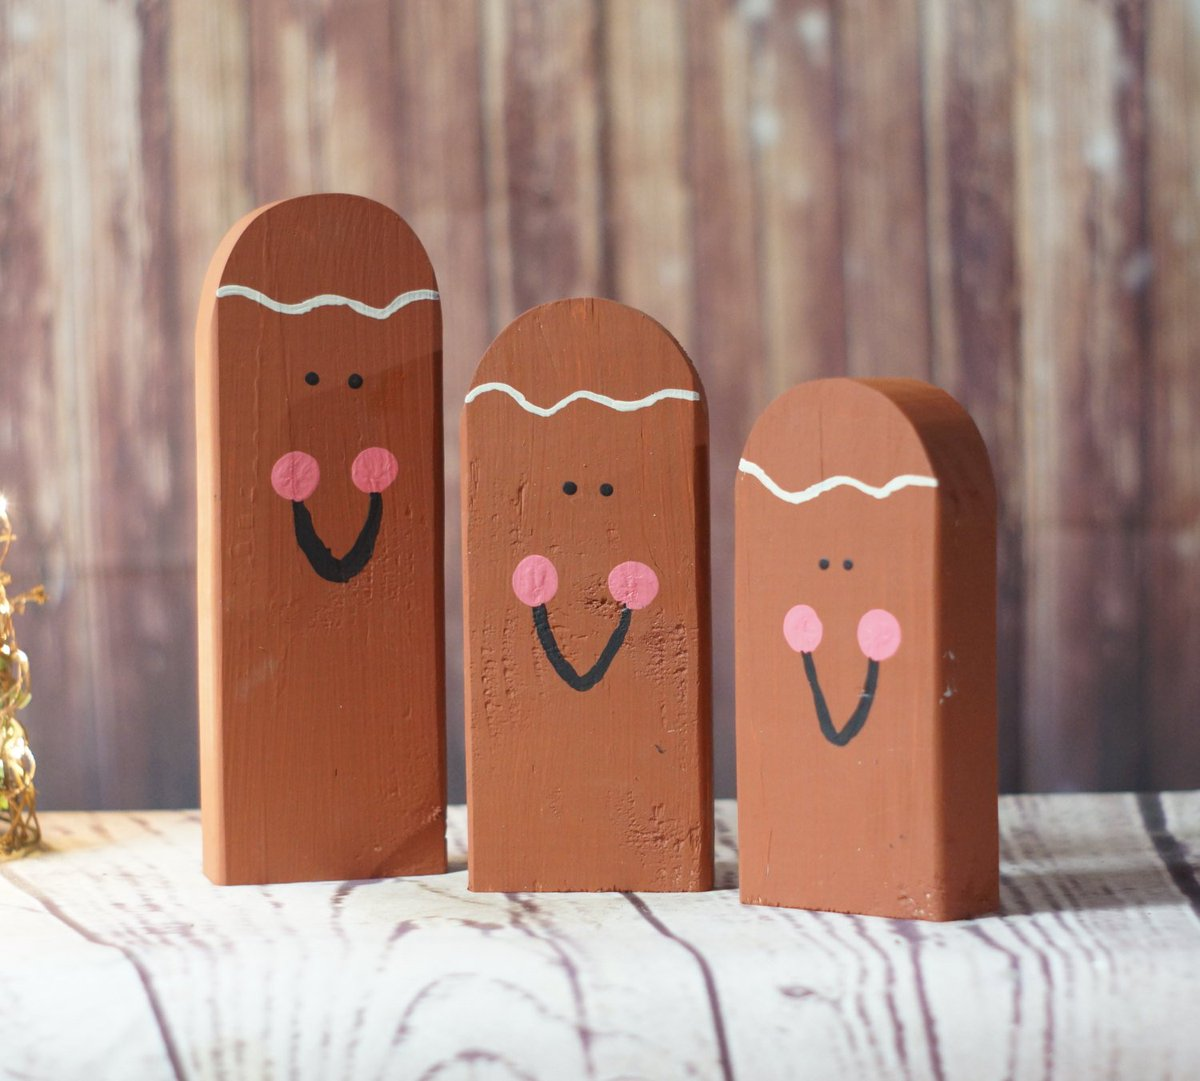 Sarah At Gft On Twitter Wooden Gingerbread Man Hand Painted